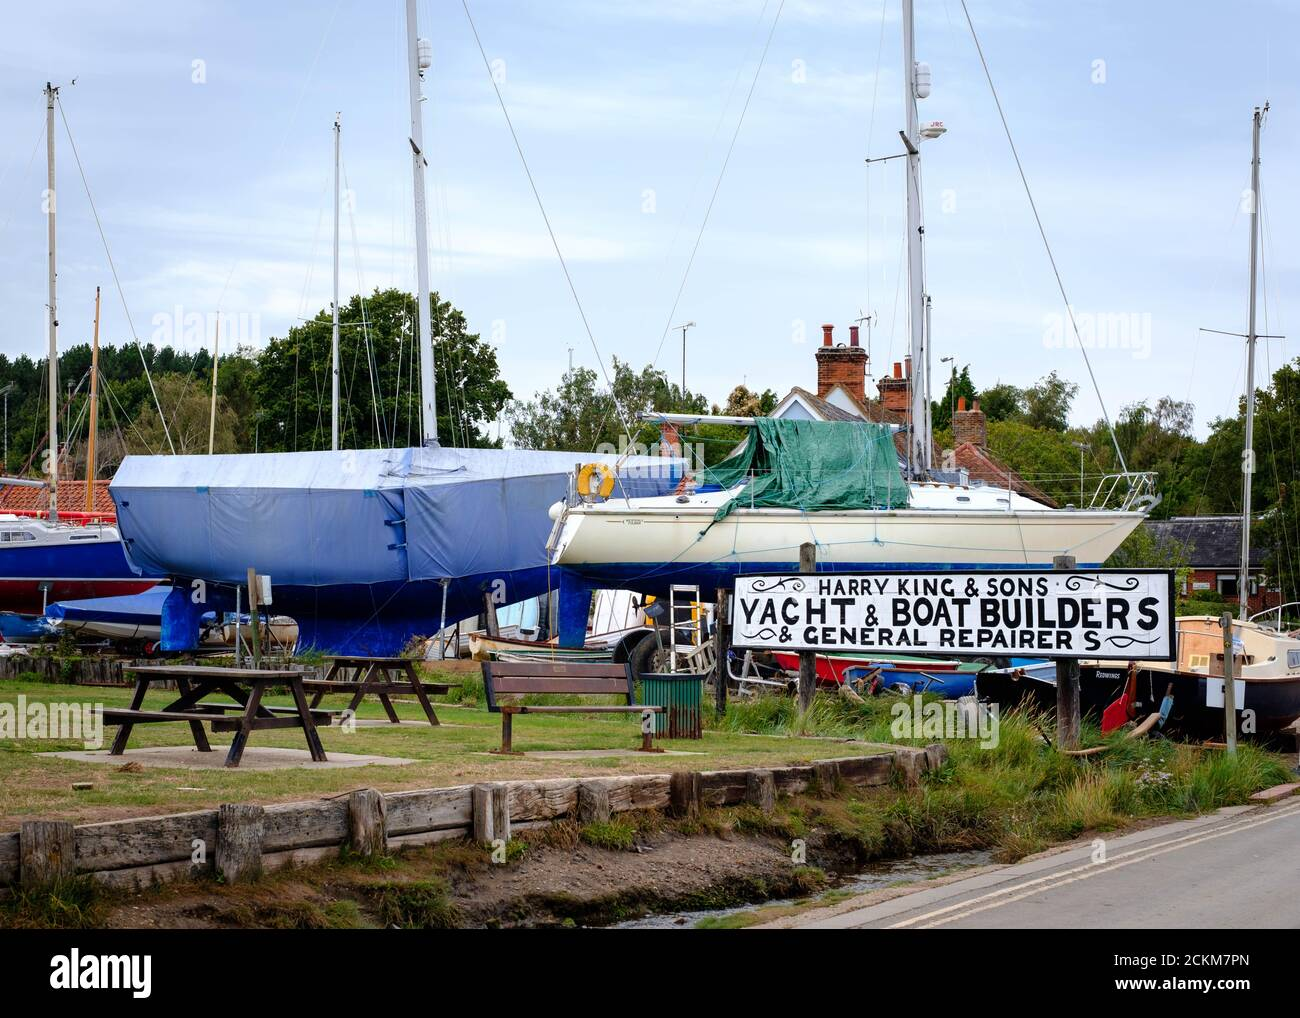 Boatyard sign for Harry King & Sons Yacht and Boat Builders and Repairers, at Pin Mill on the River Orwell, Suffolk, East Anglia Stock Photo